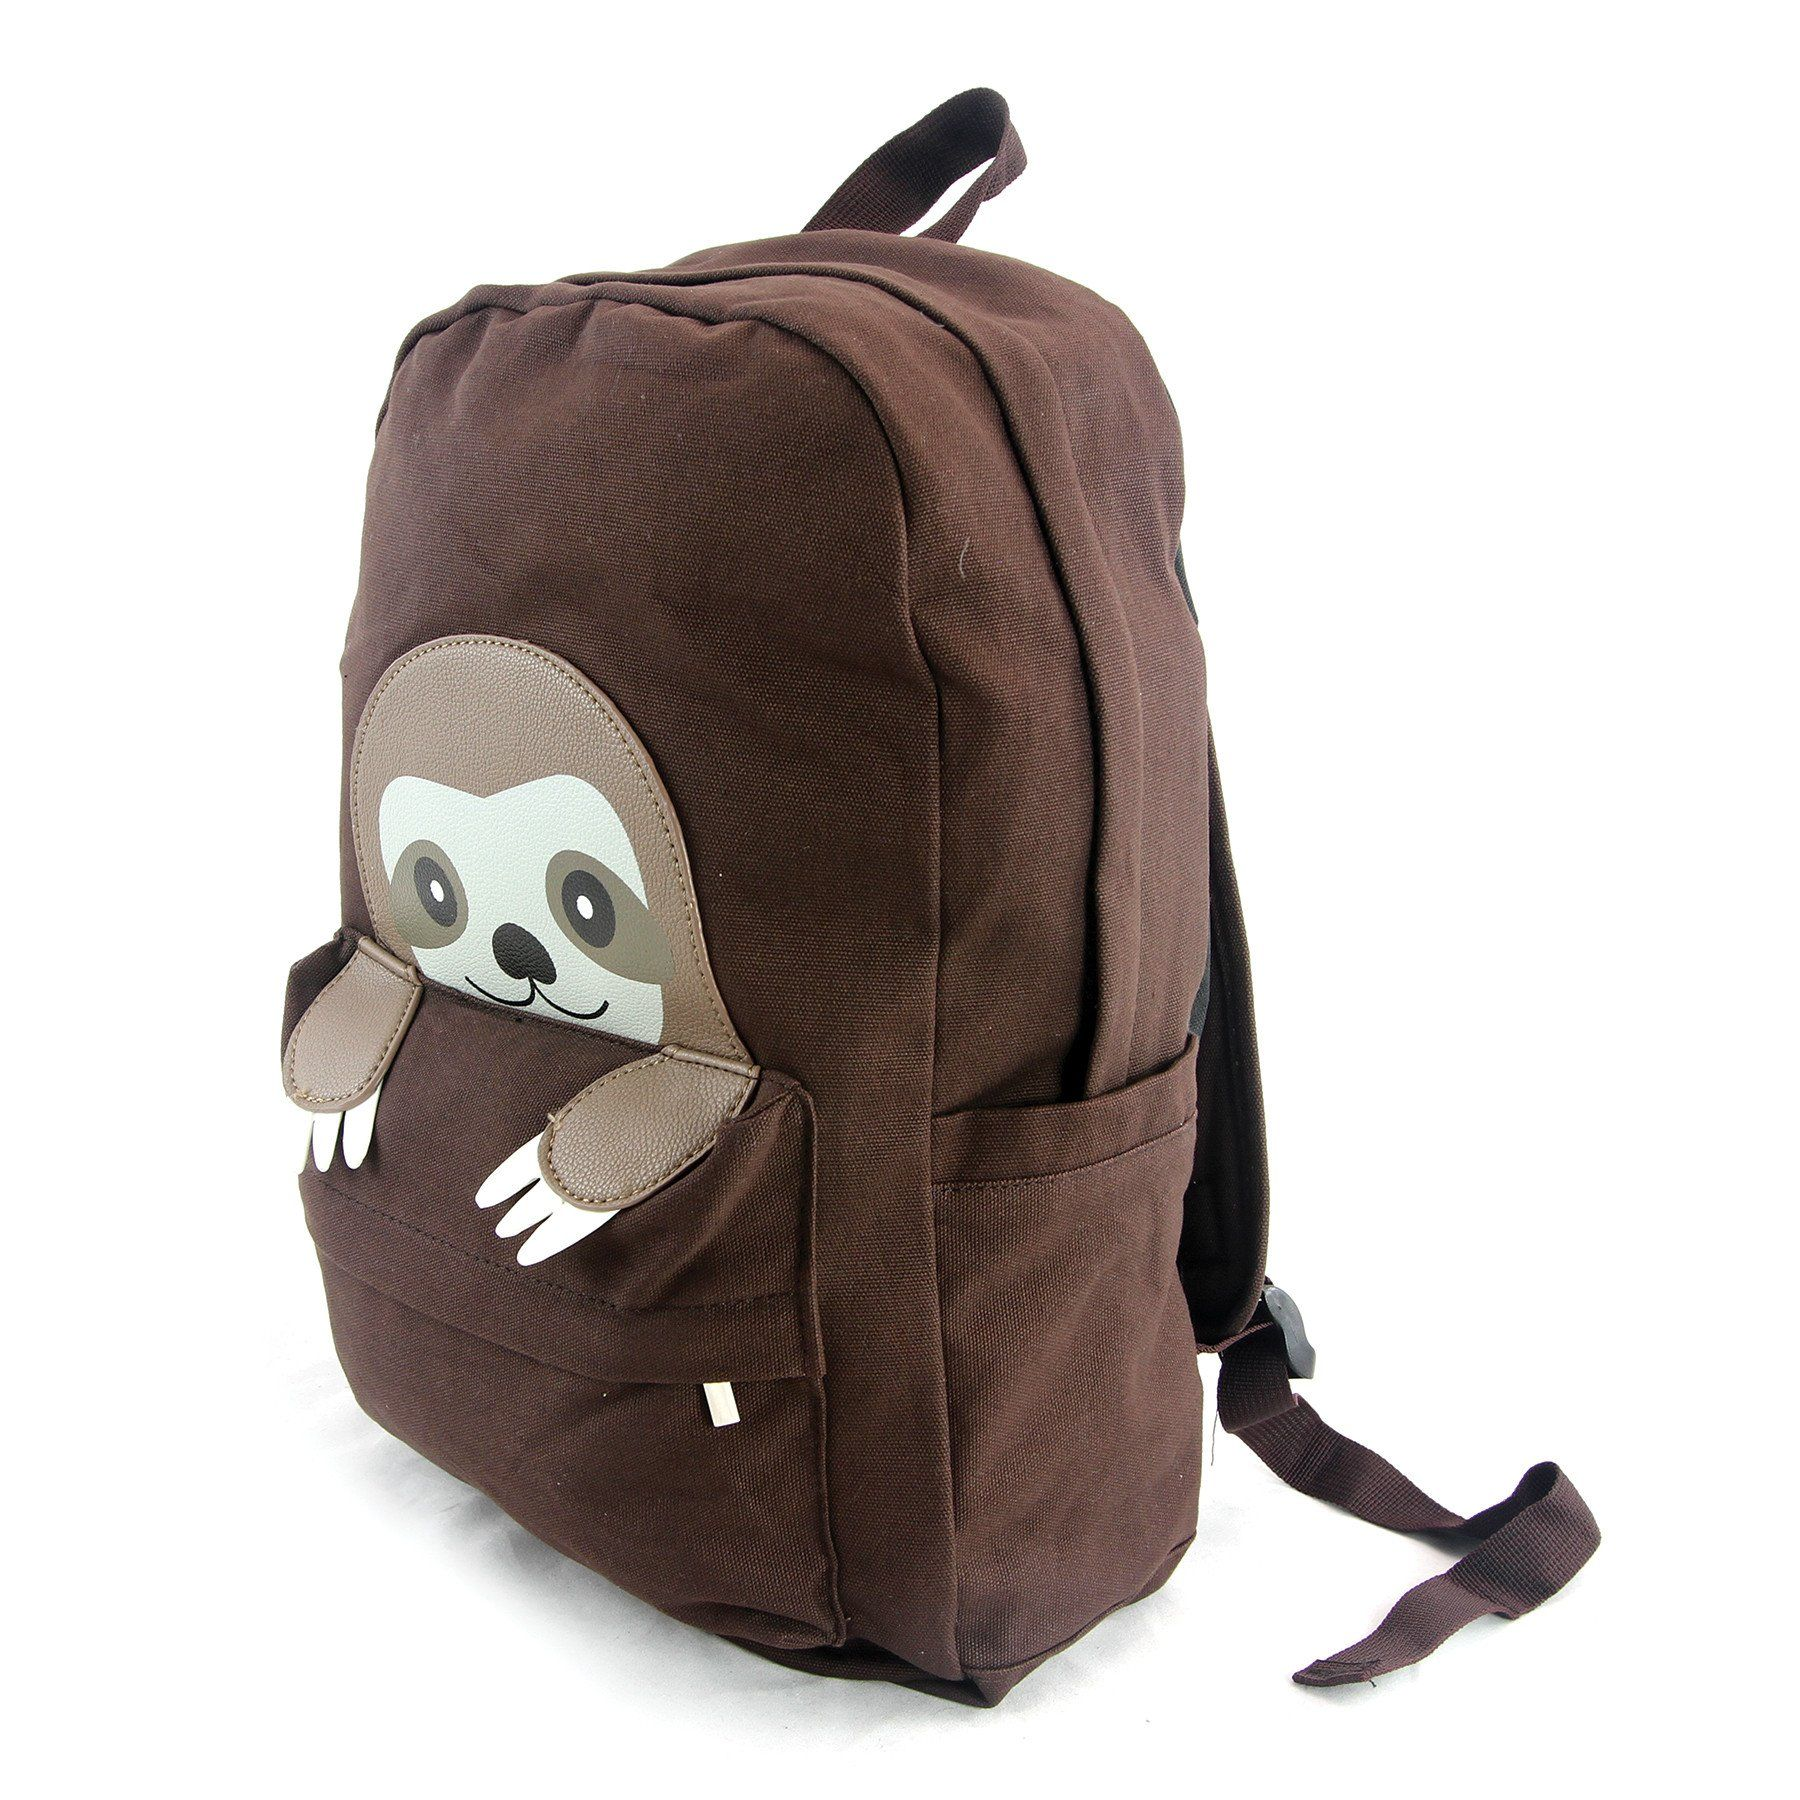 Cute Baby Sloth Backpack #babysloth